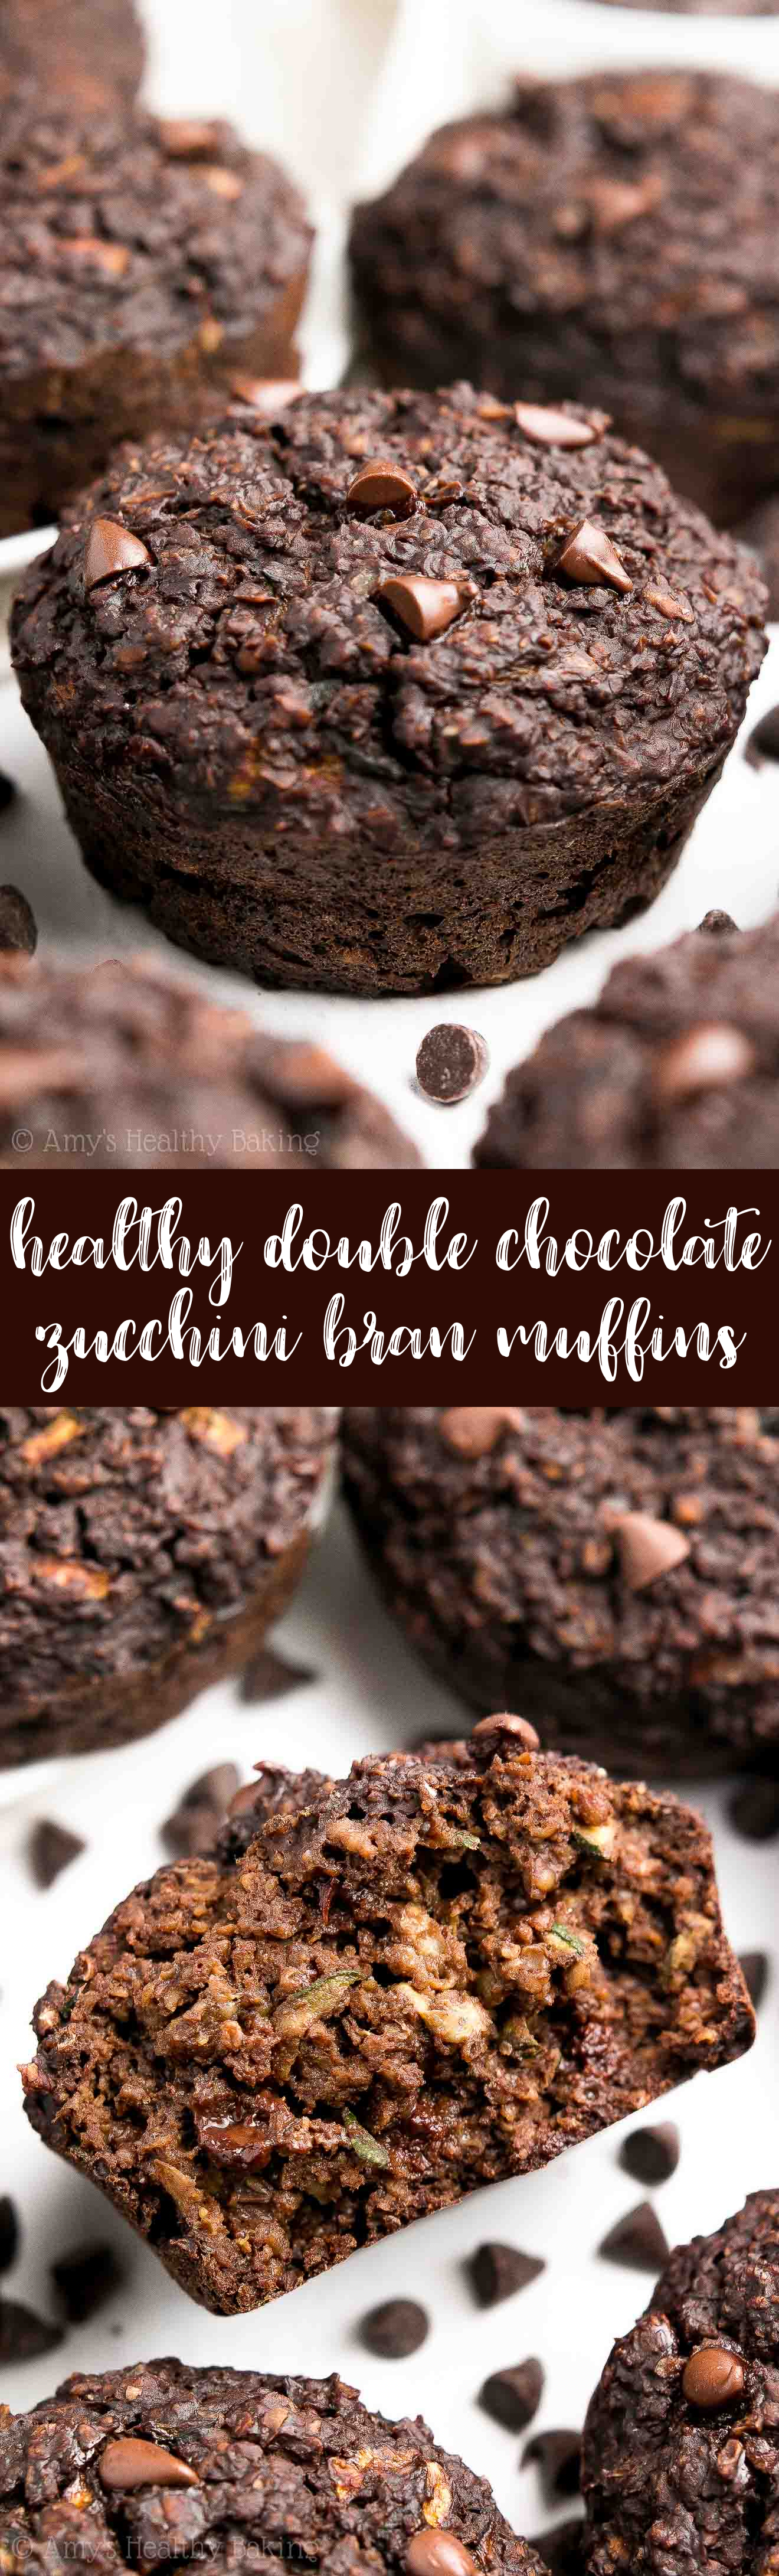 {HEALTHY!} Double Chocolate Bran Muffins -- they practically taste like brownies, for just 105 calories! SO rich & chocolaty, and they're so easy to make! (No mixer needed!) Totally kid-approved and freezer-friendly! #healthy #breakfast #recipe #muffins #cleaneating